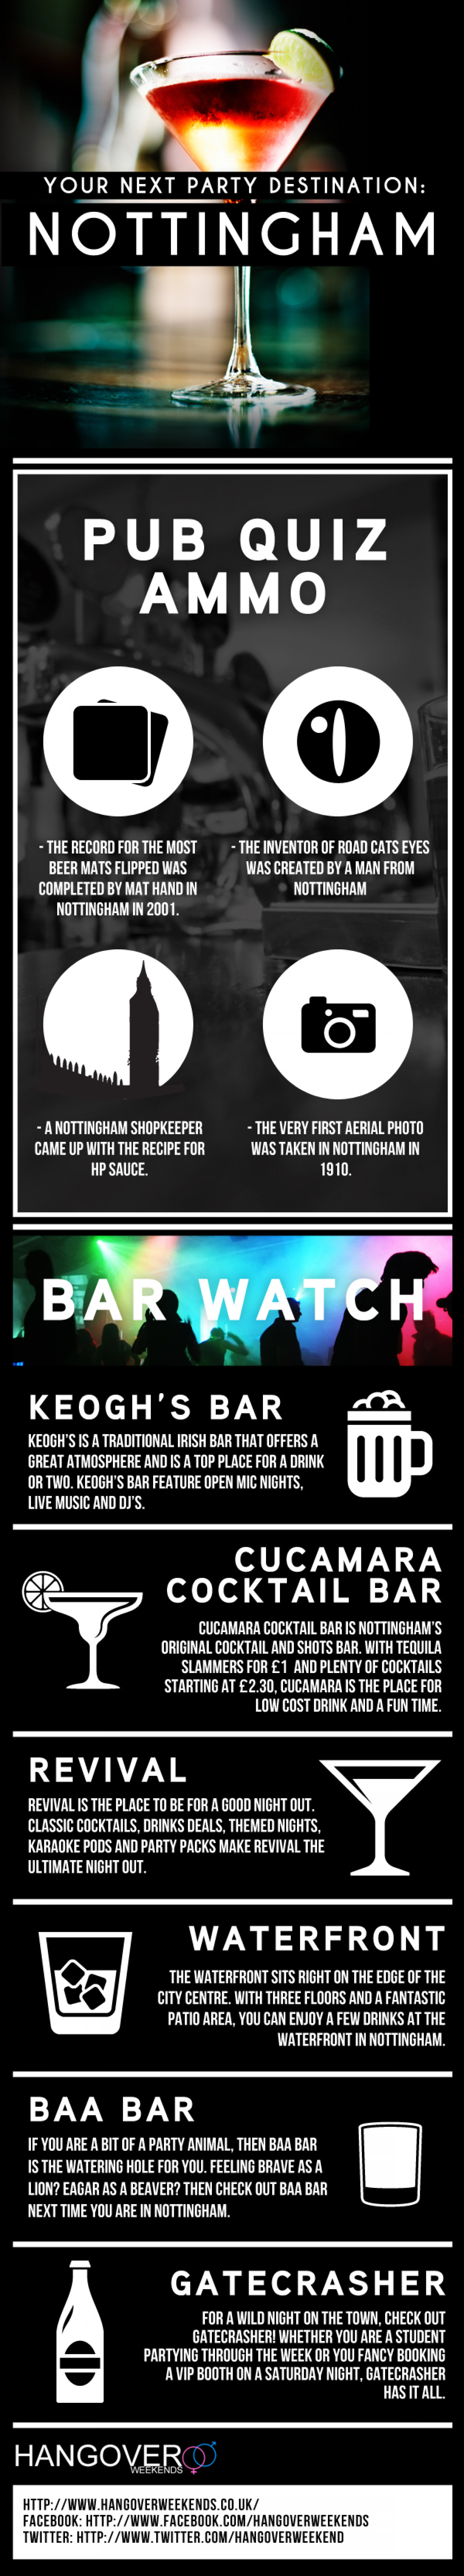 NOTTINGHAM BAR CRAWL Infographic